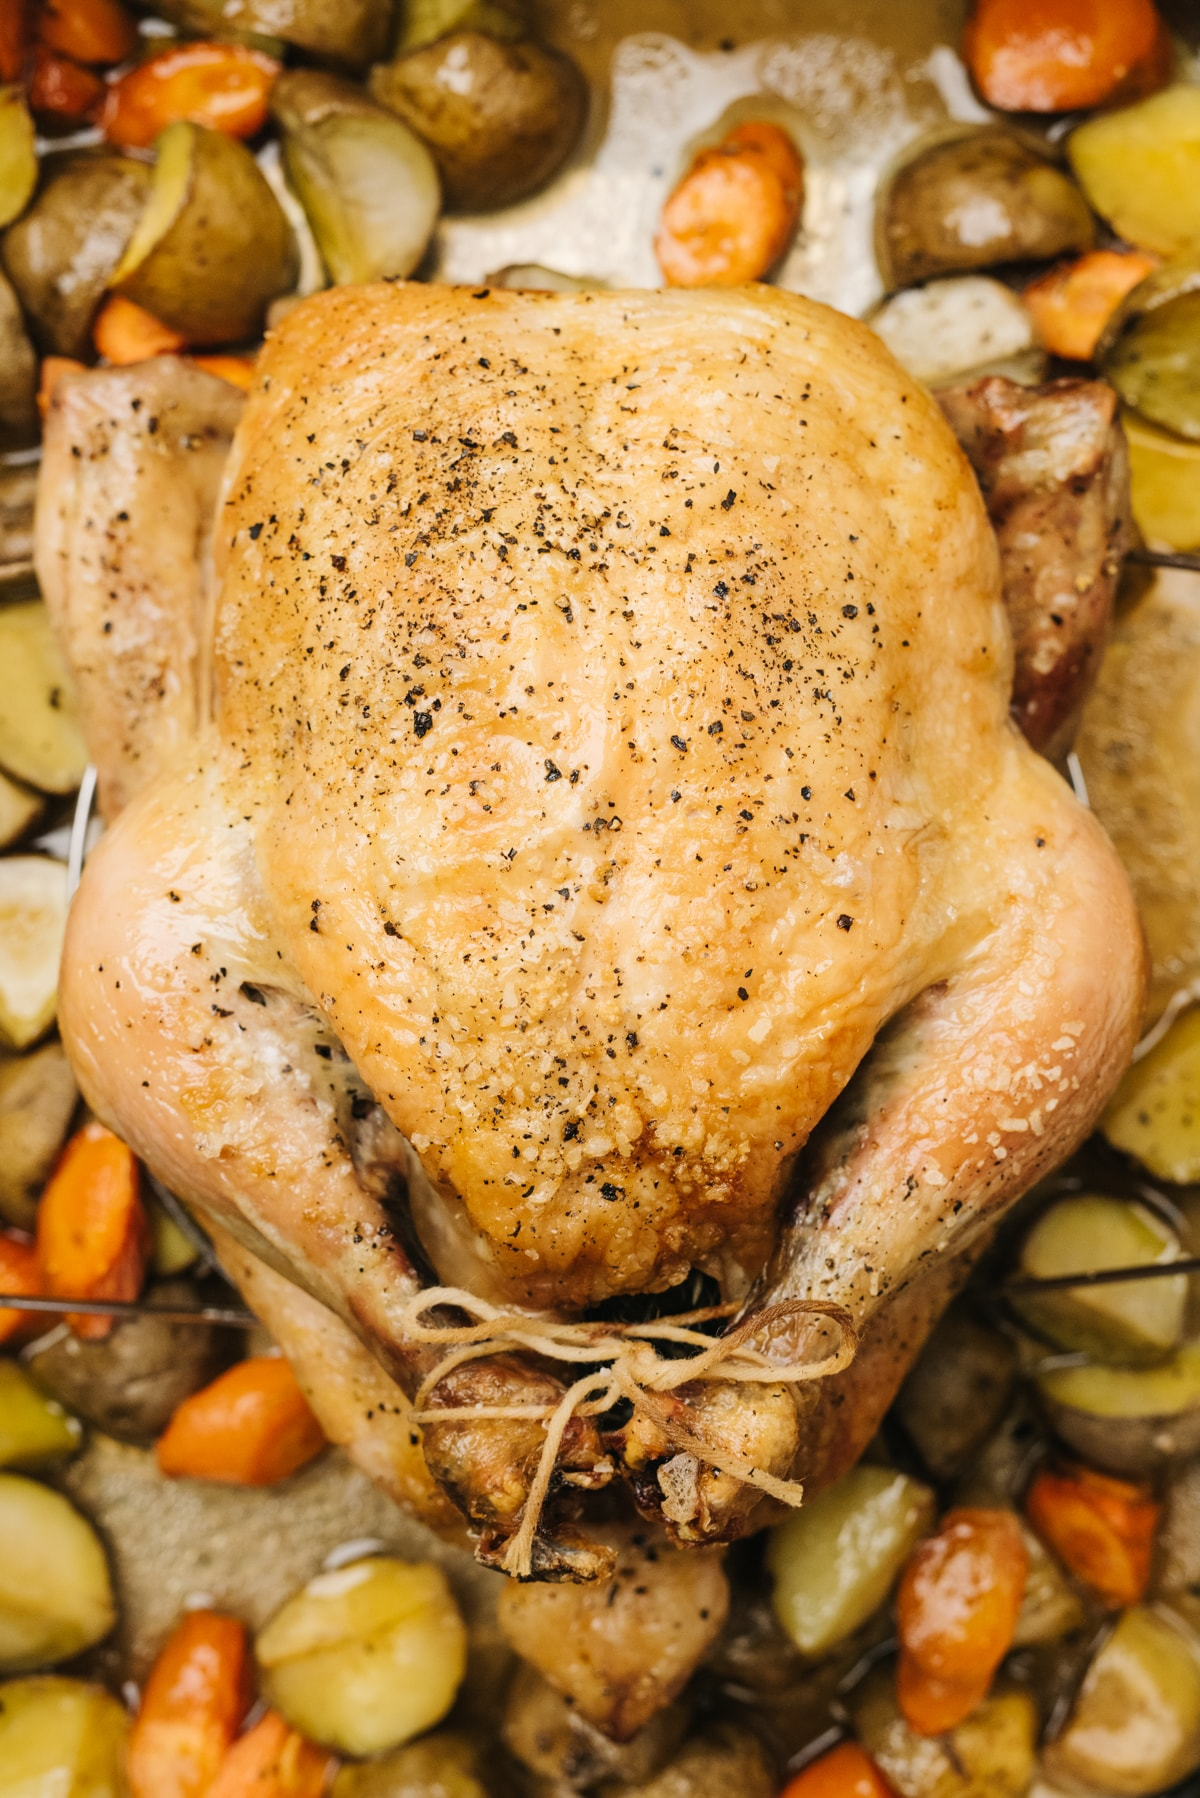 A whole roasted chicken in a roasting pan surrounded by carrots and potatoes.